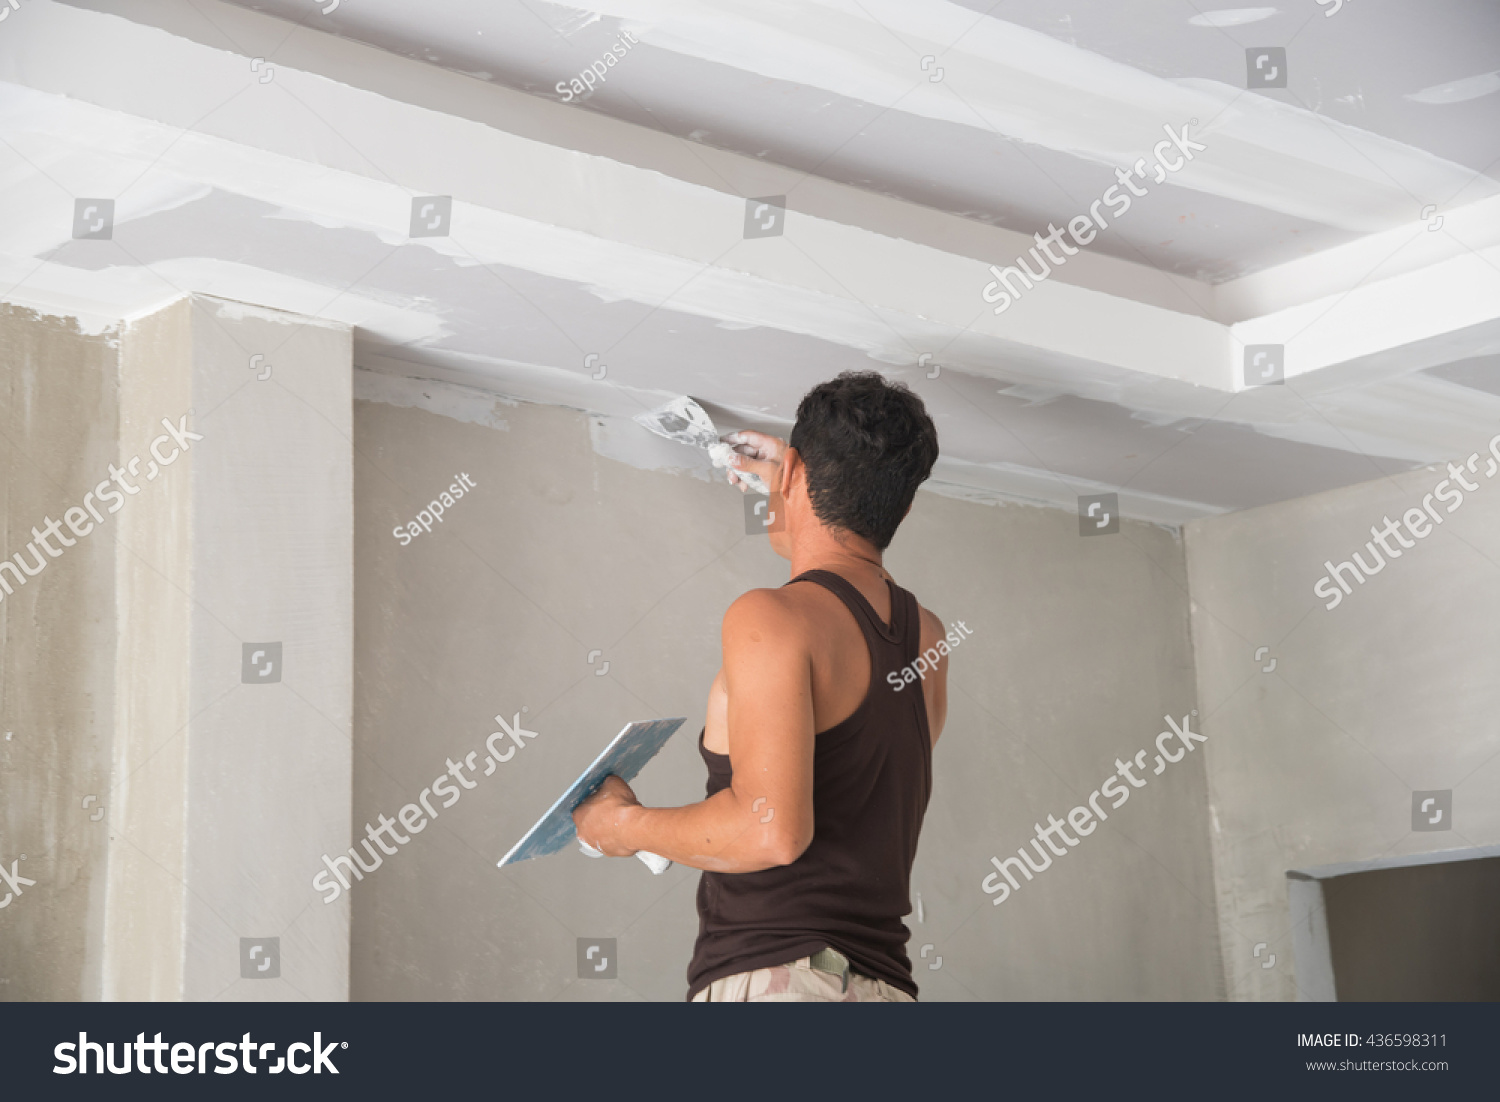 Worker Working Manual With Wall Plastering Tools Inside A House. Plasterer  Renovating Indoor Walls And